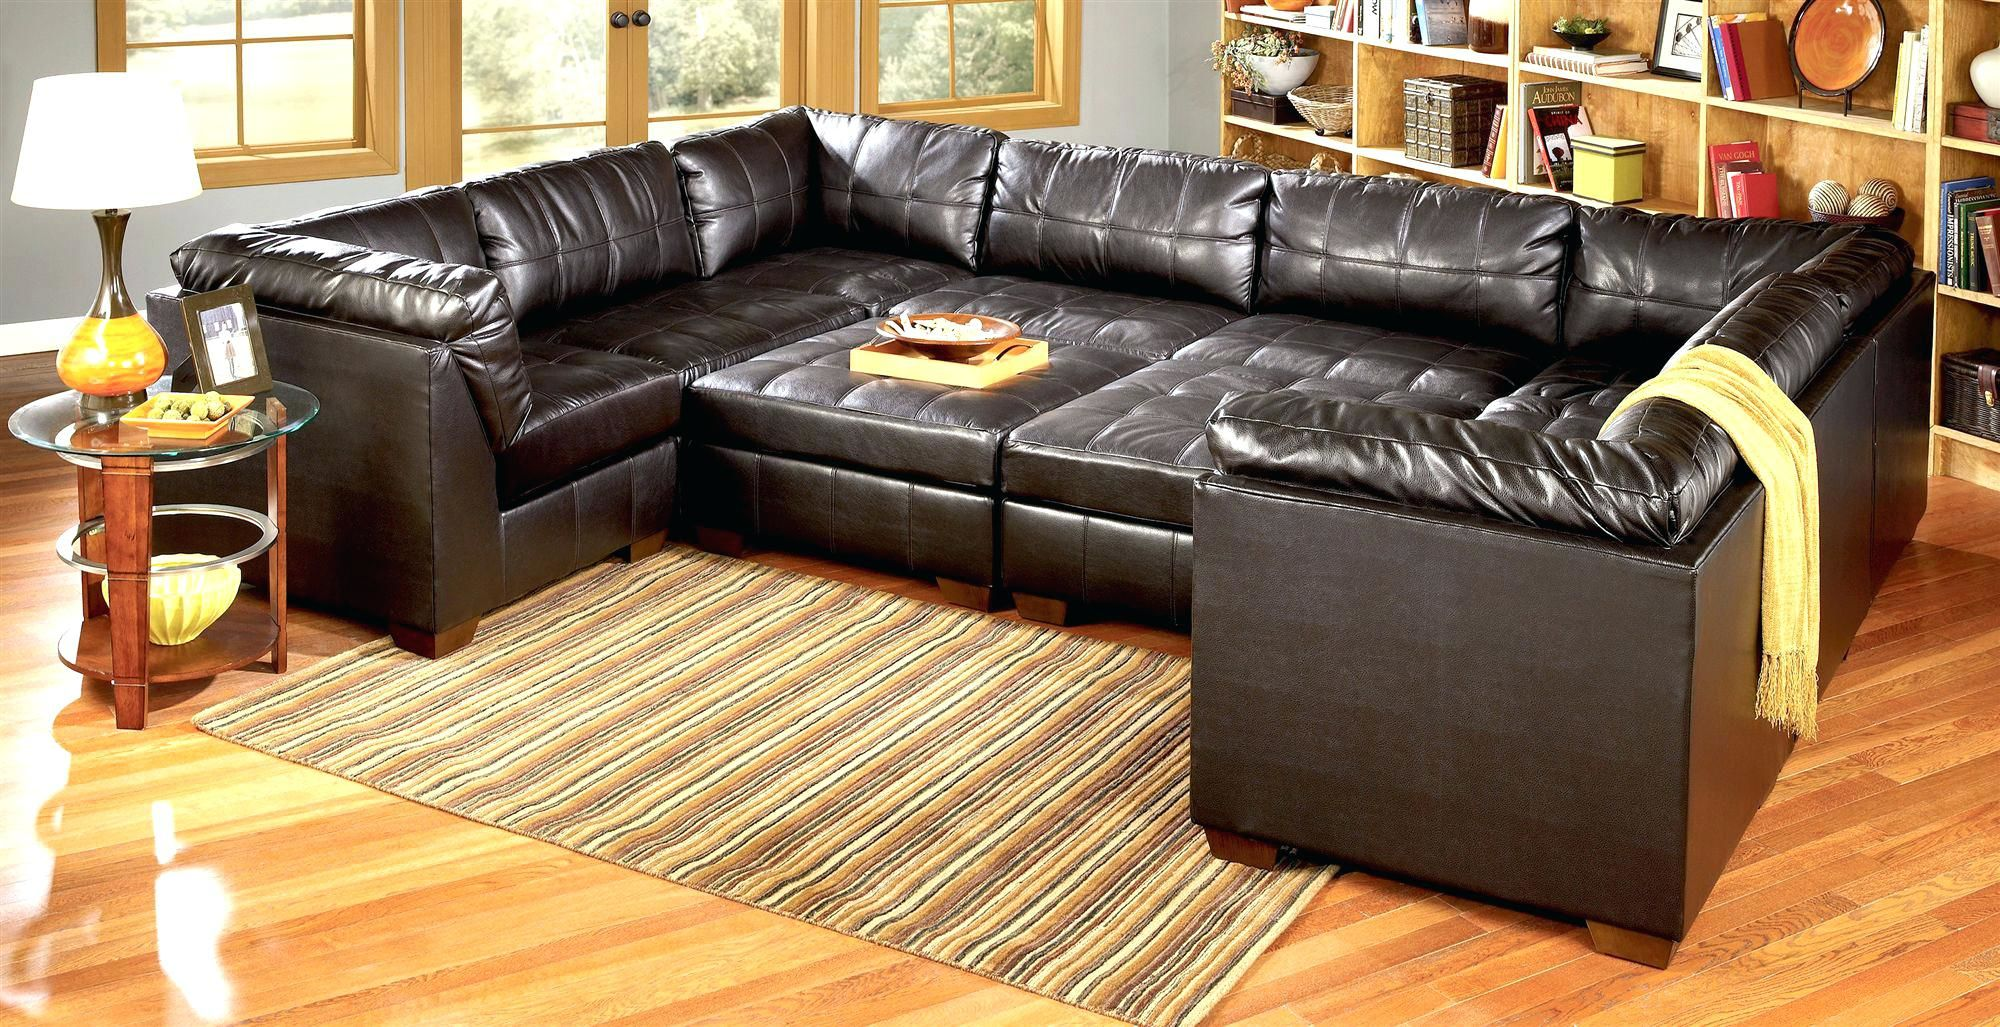 new ashley furniture sofa chaise architecture-Stylish ashley Furniture sofa Chaise Décor